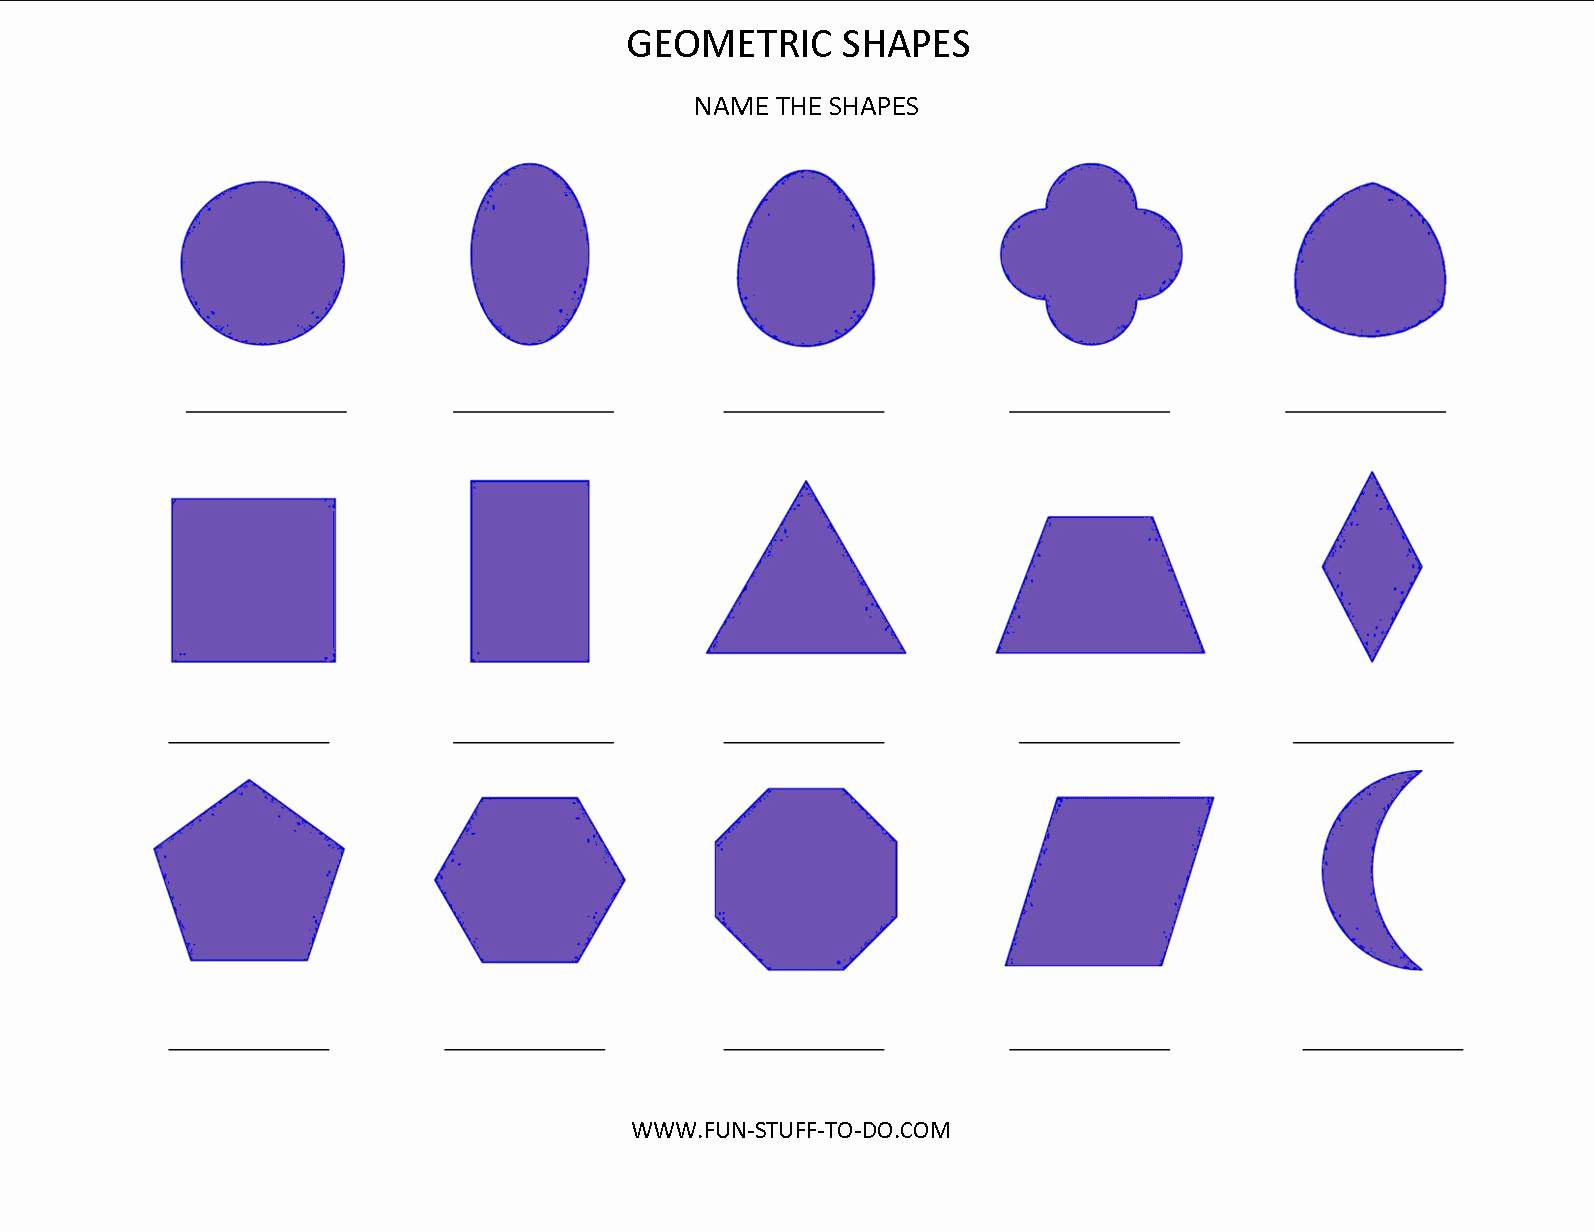 Geometric Shapes Patterns Worksheets New Patterns for Geometric Shapes Design Patterns